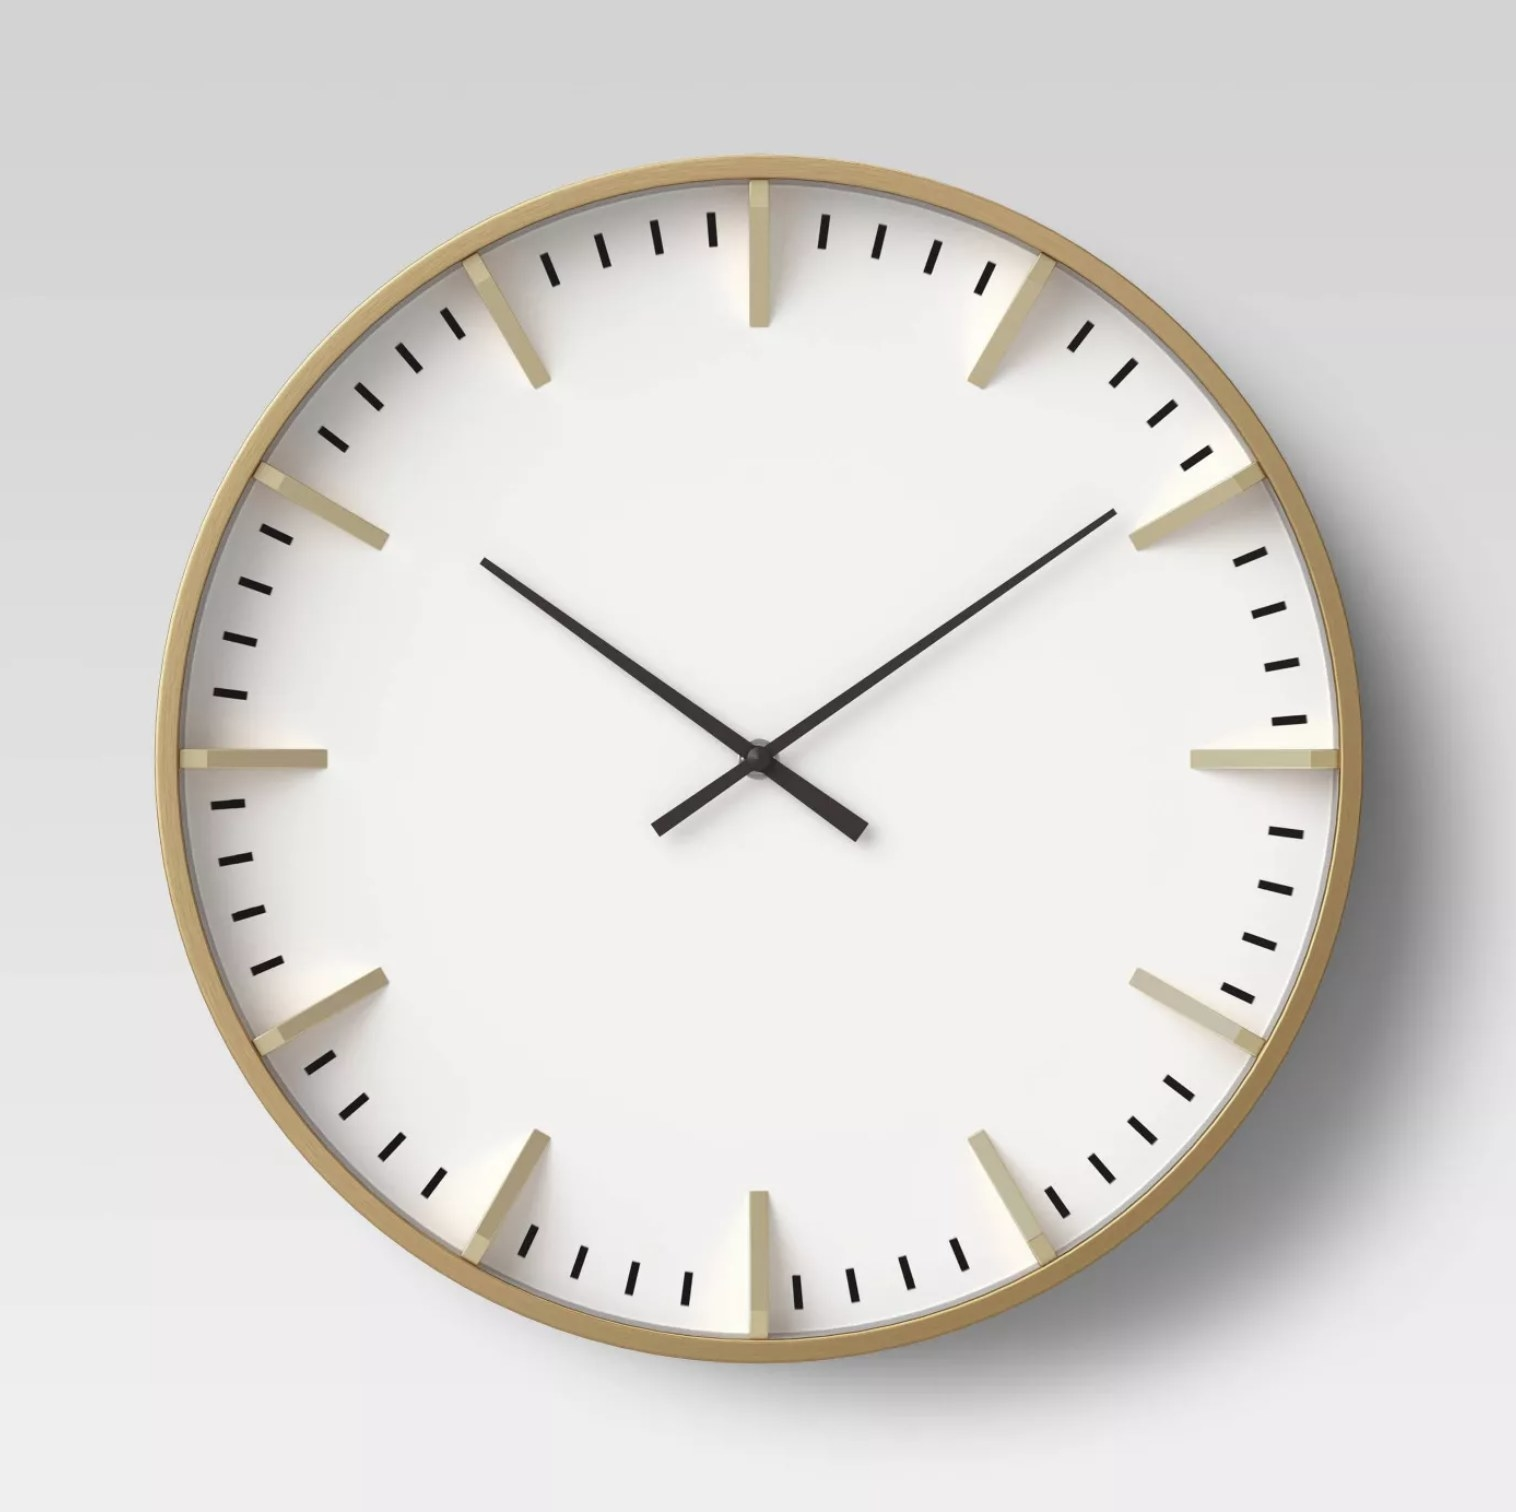 The white and brass clock